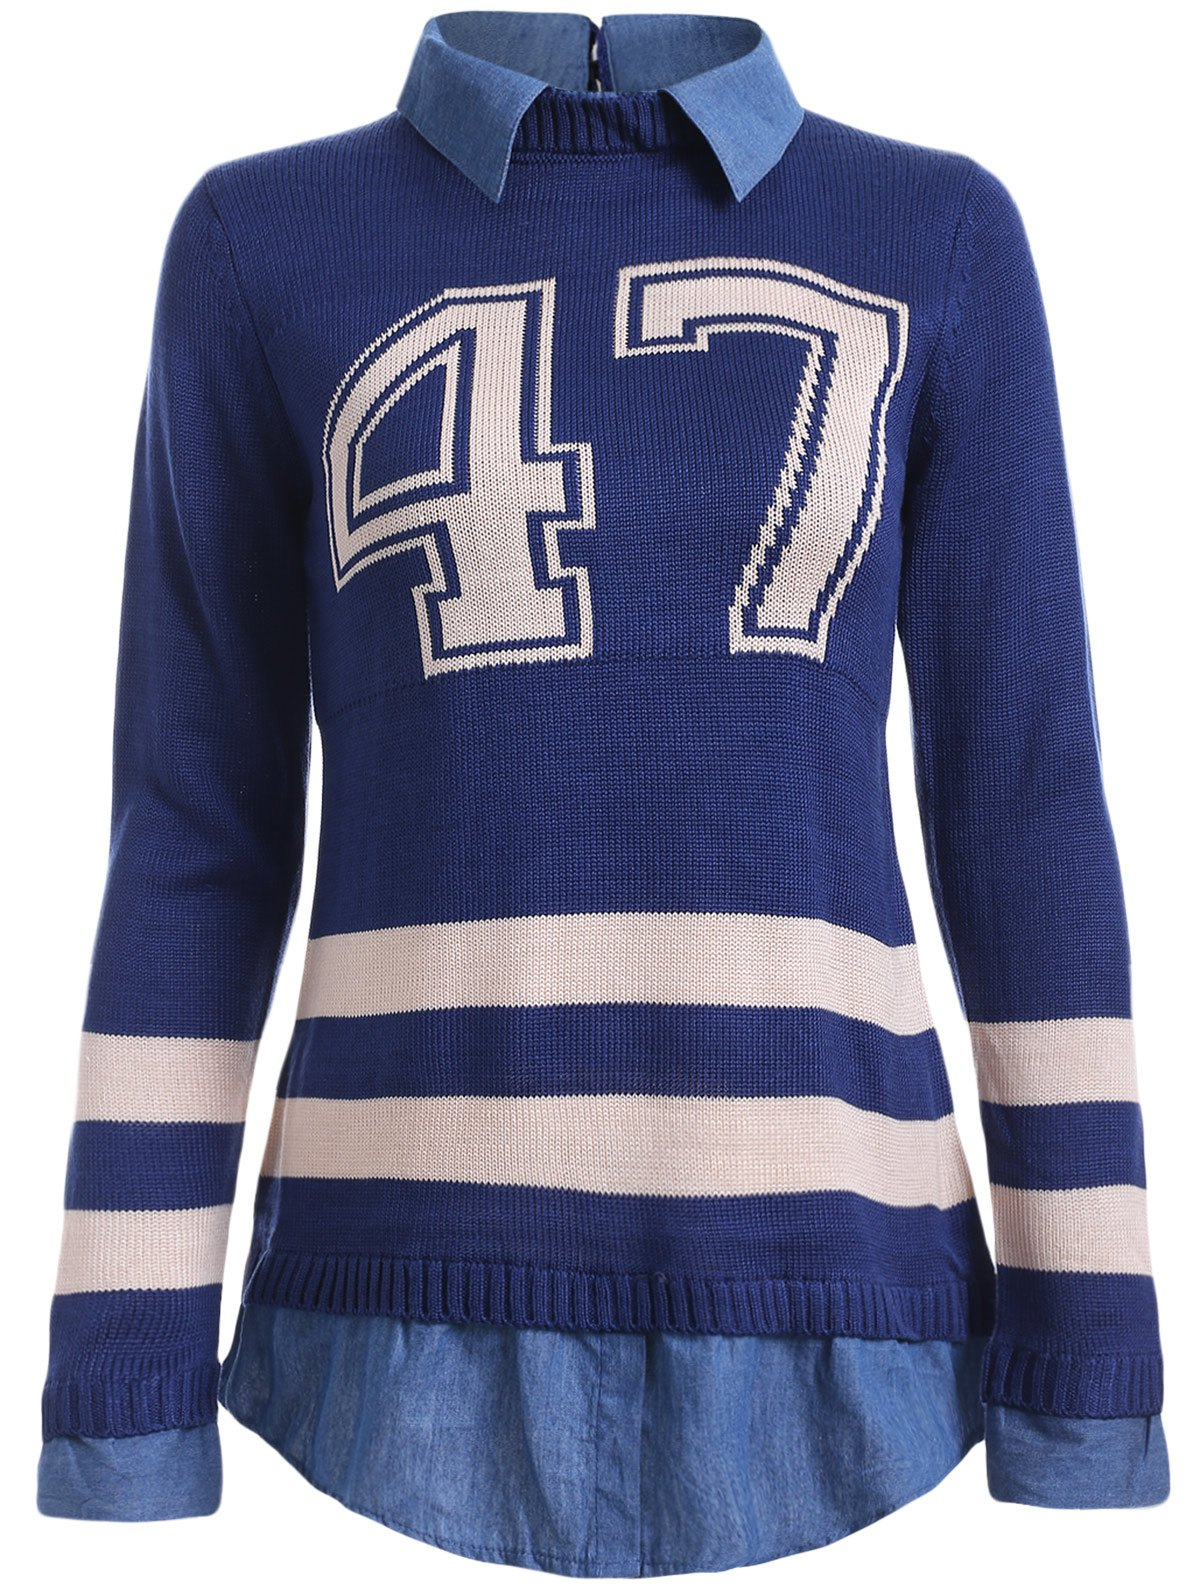 Number Pattern Varsity-Striped Splicing Knitwear